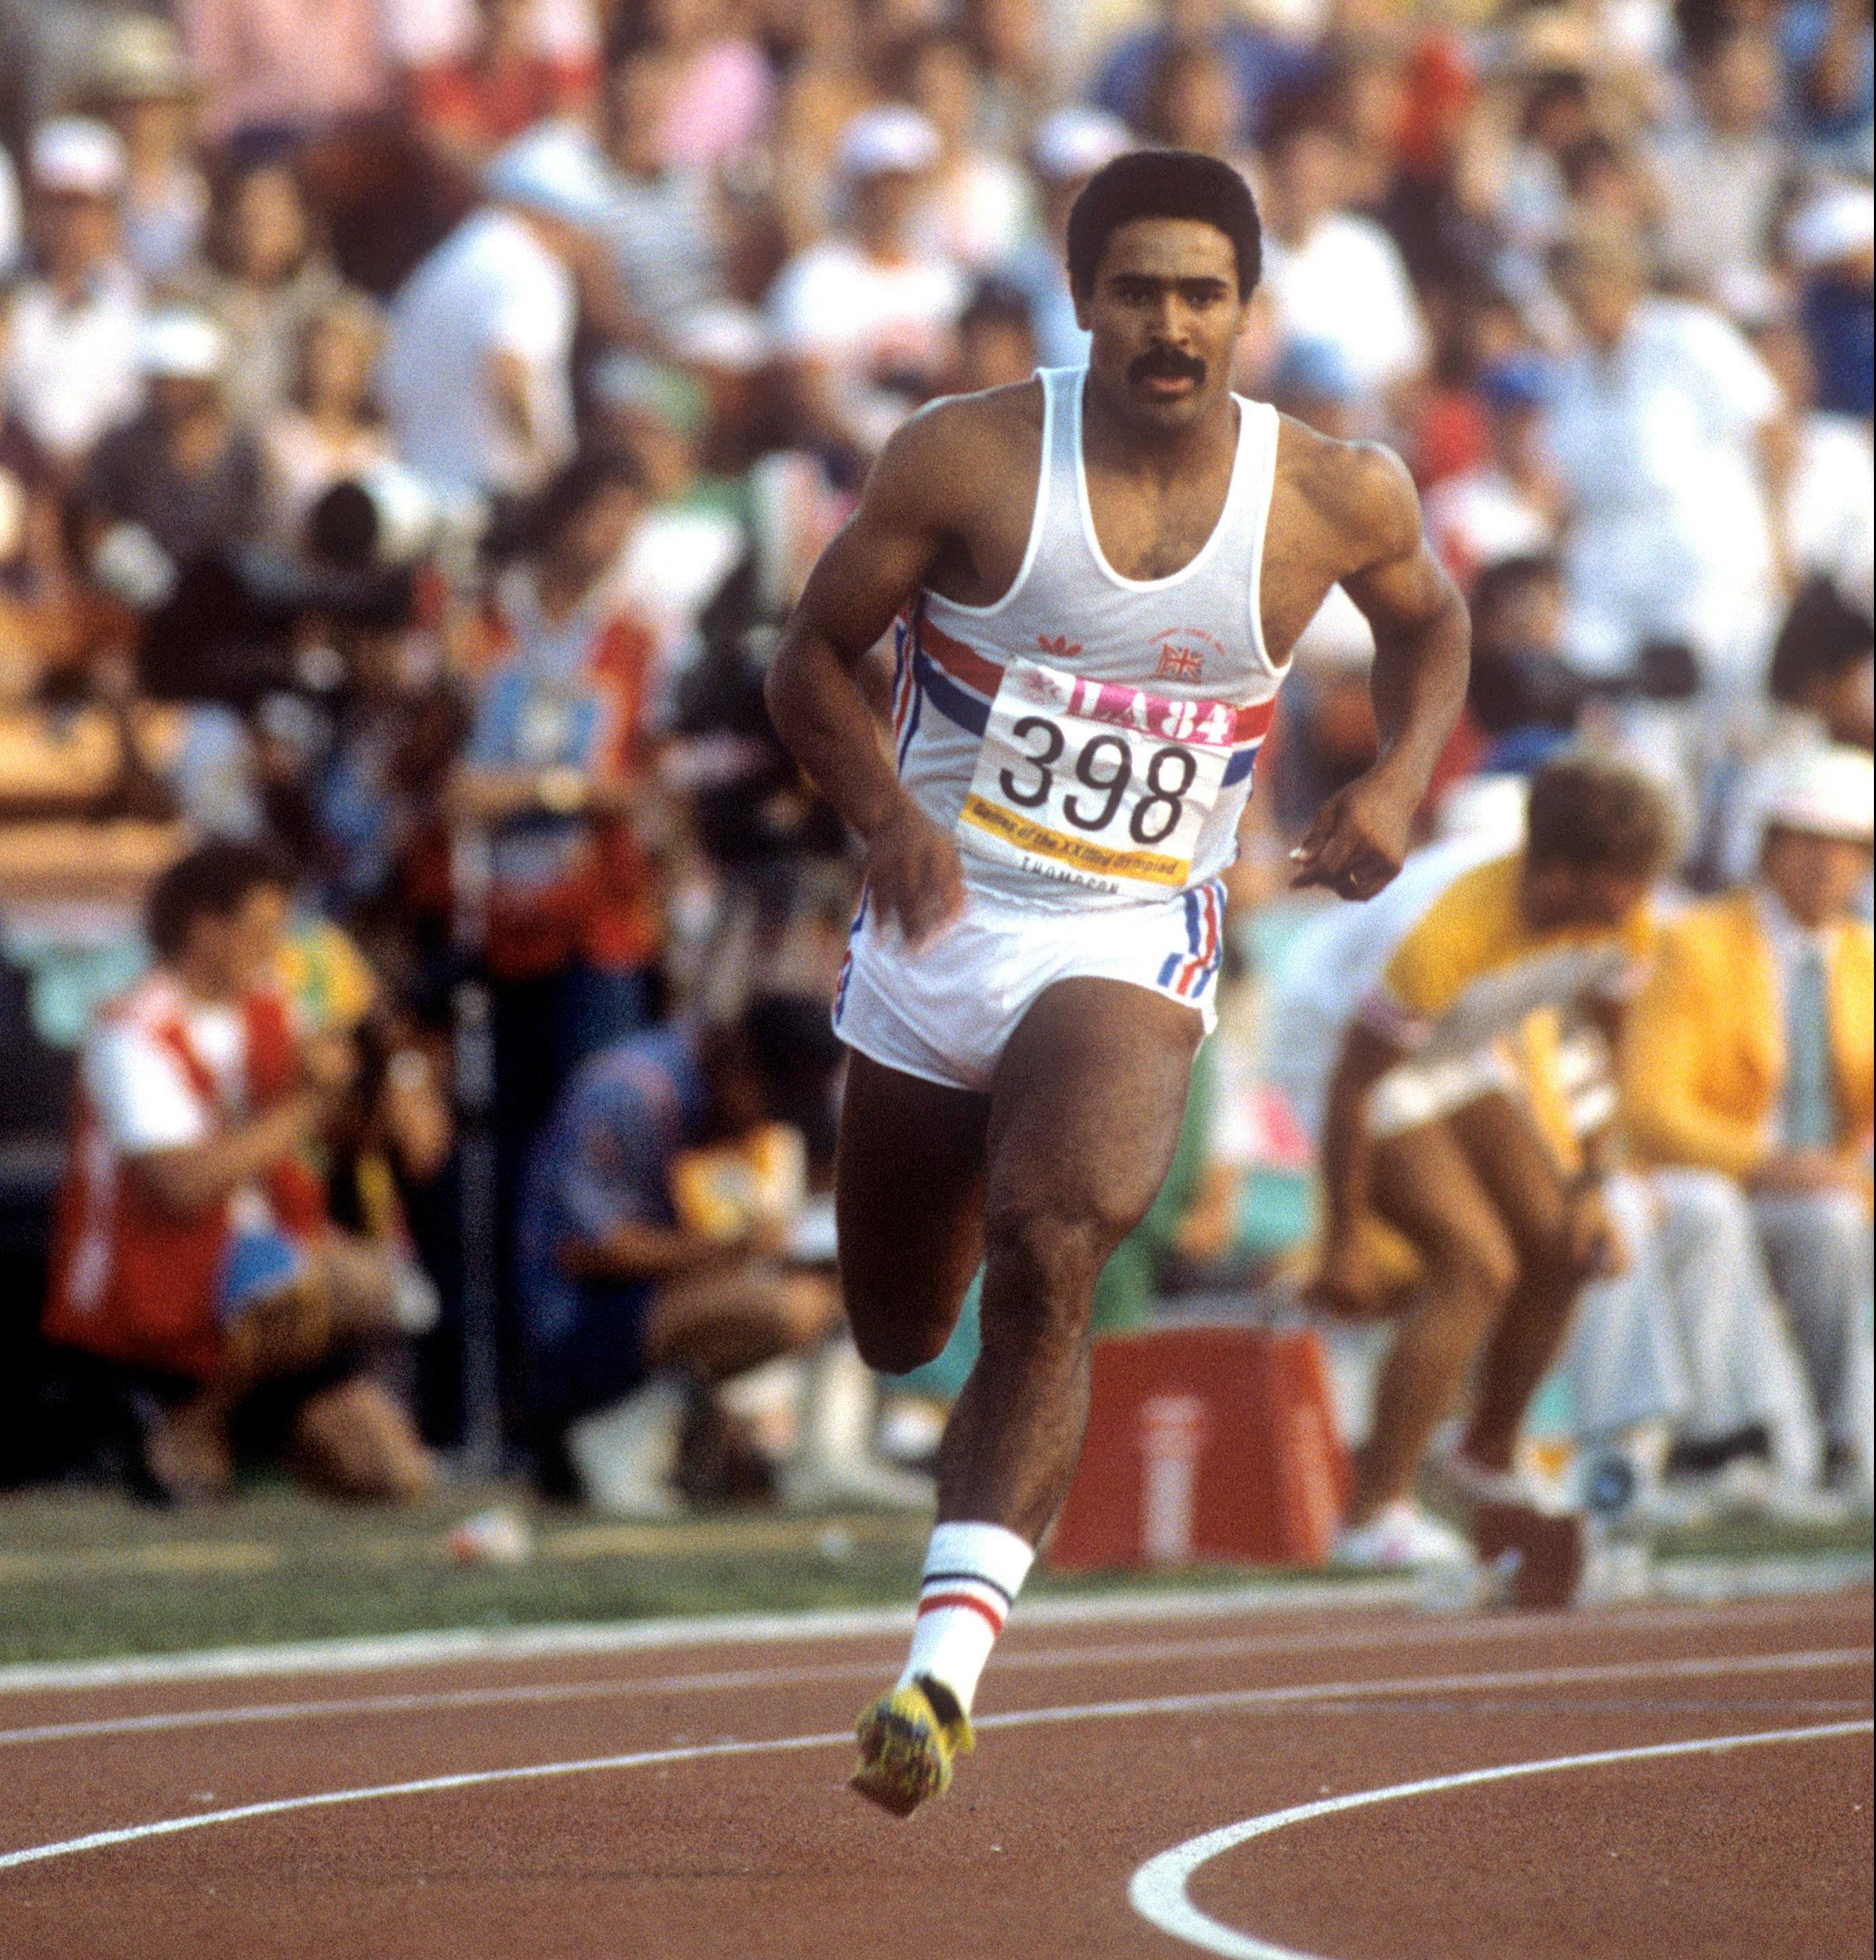 Daley Thompson has slammed WADA's decision to allow Russia to compete once more